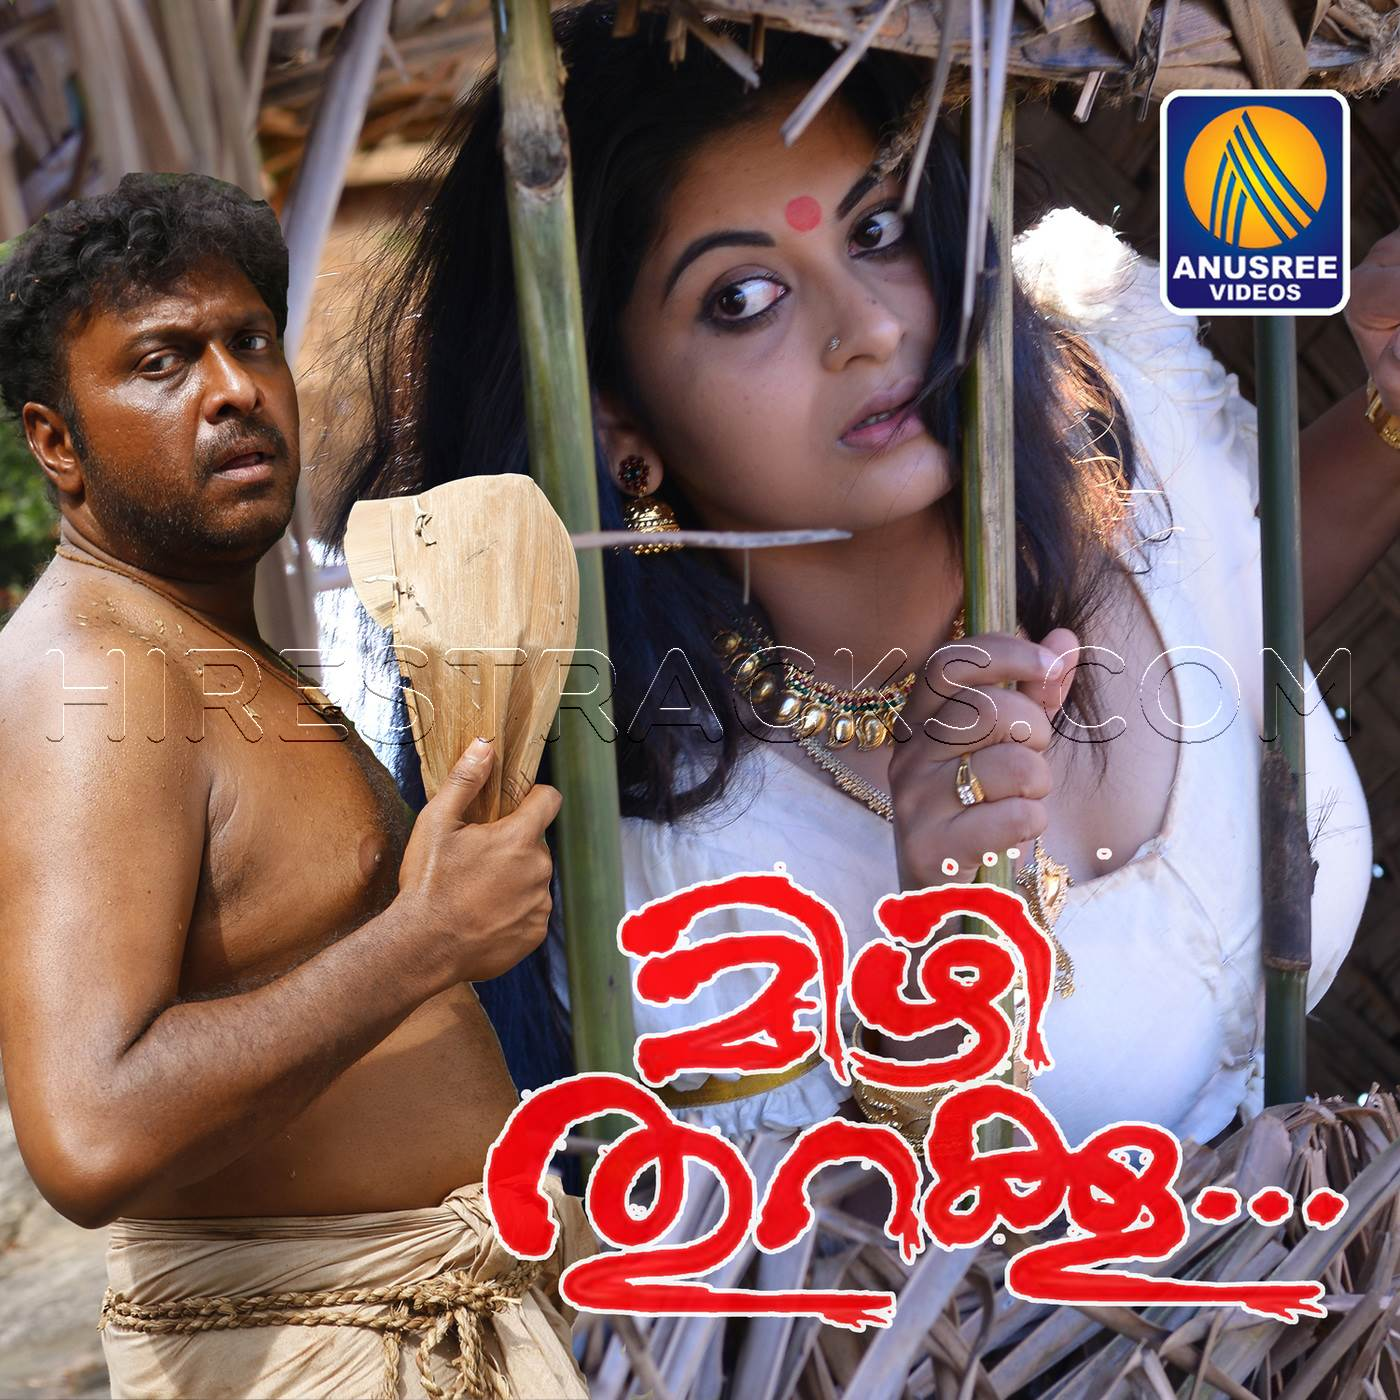 Mizhi Thurakku (2014) (M. Jayachandran) (Anusree Audios And Videos)